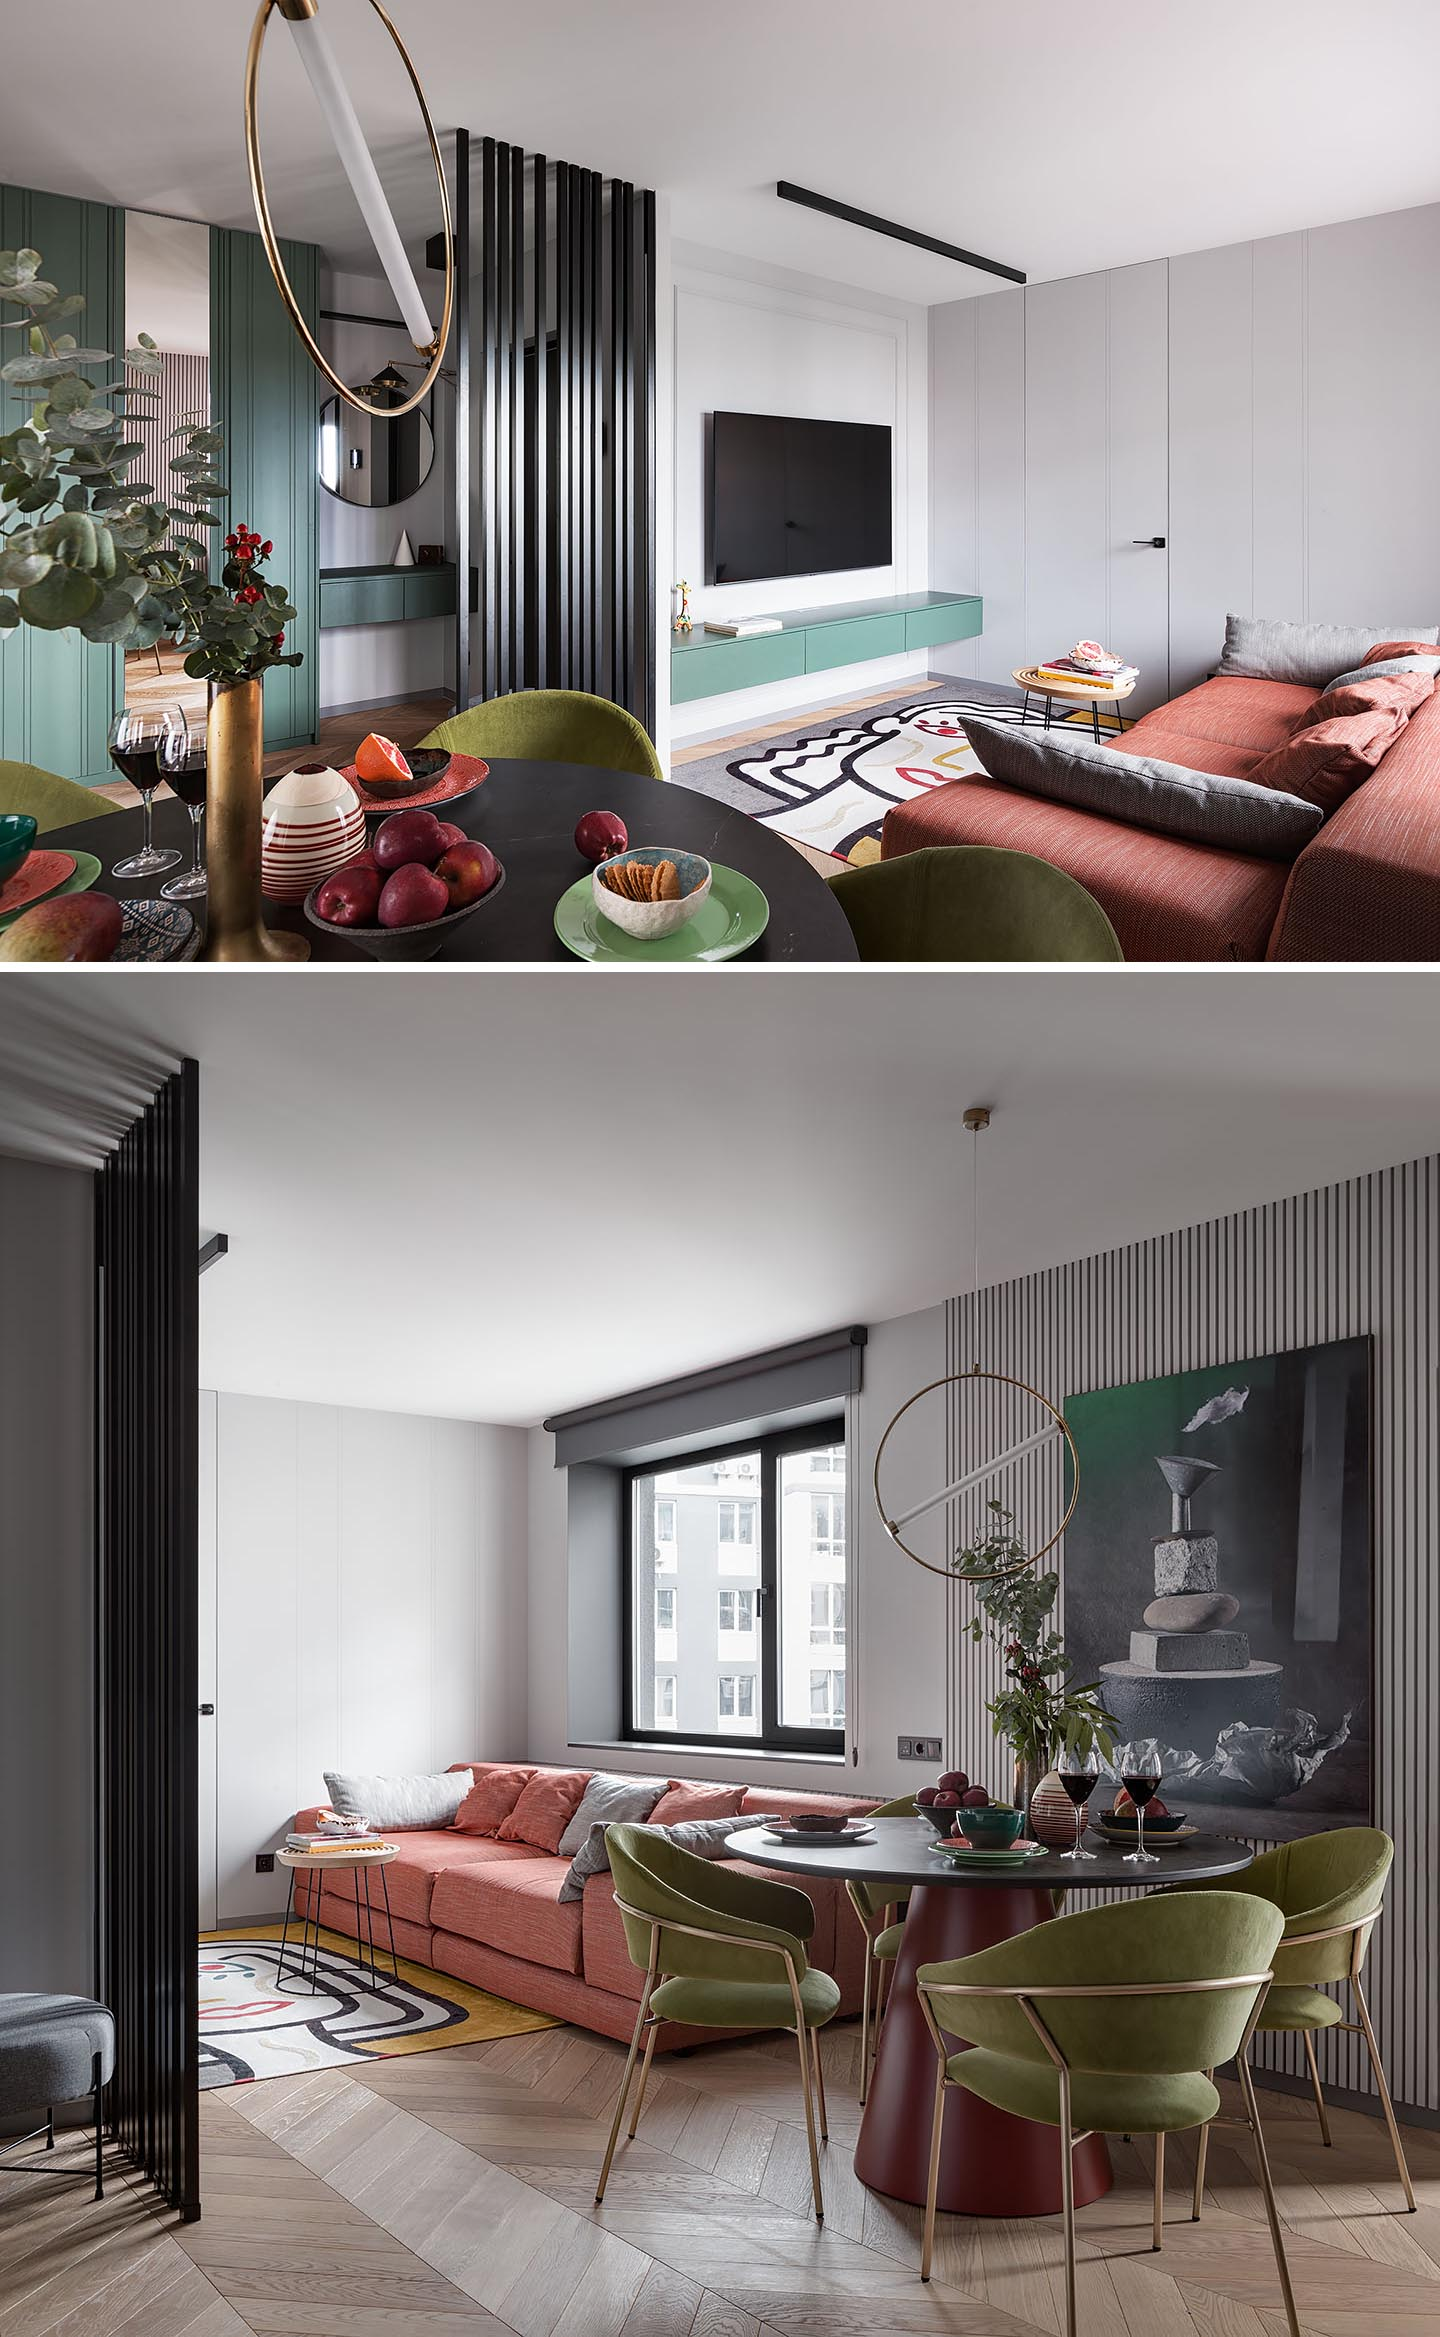 In the living room, a black vertical slat partition creates a separation between the entryway and the living space, where there's a large and colorful couch that faces the television.